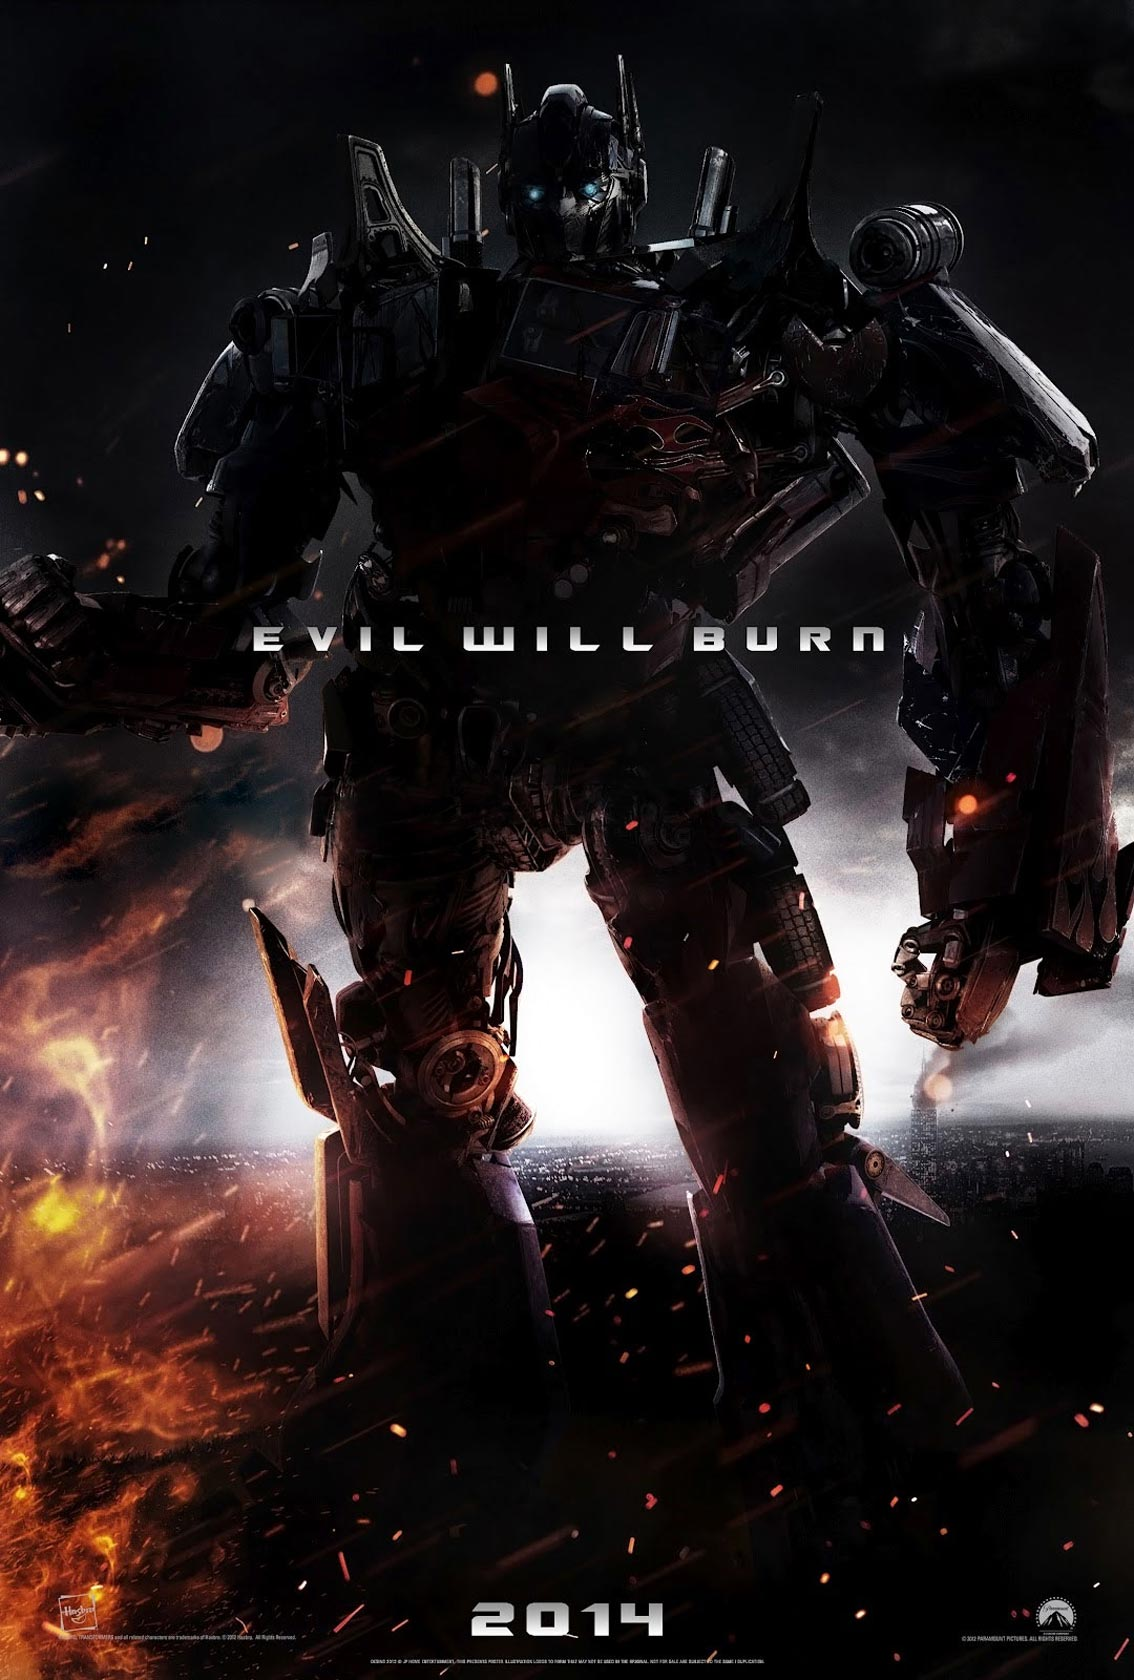 image - transformers-4-poster | moviepedia | fandom poweredwikia